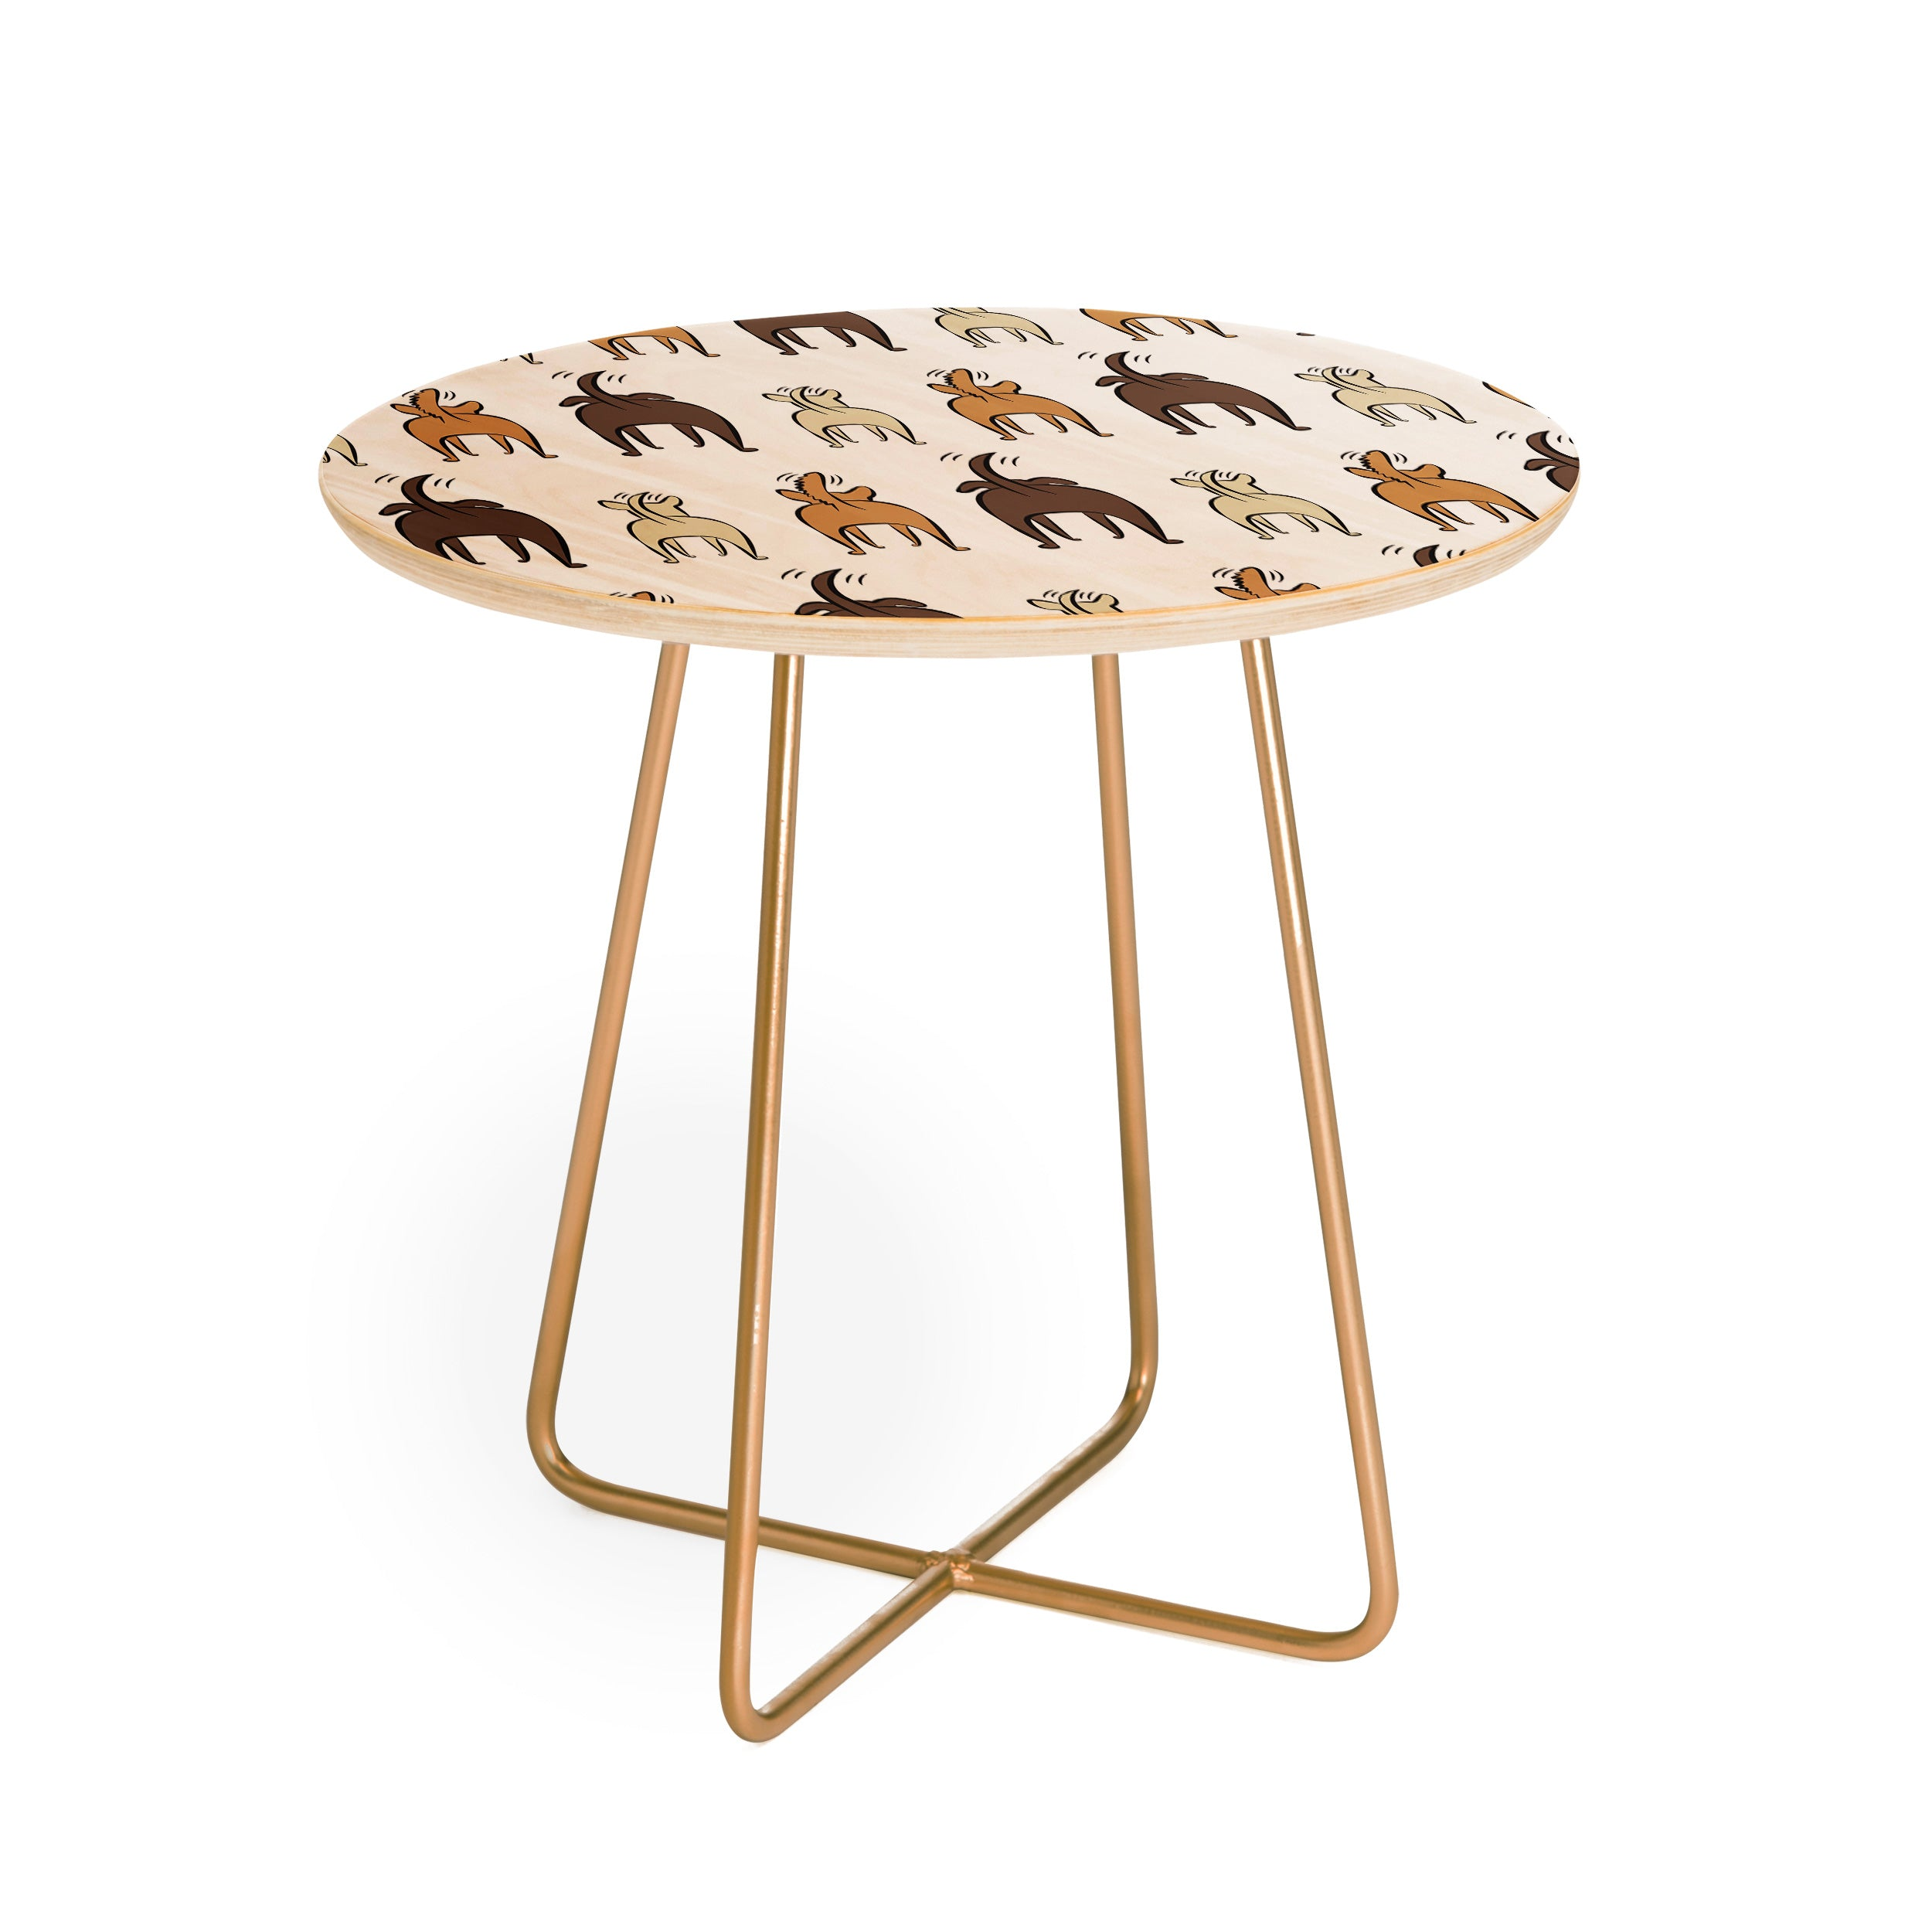 Little Arrow Design Co Happy Dogs Round Side Table